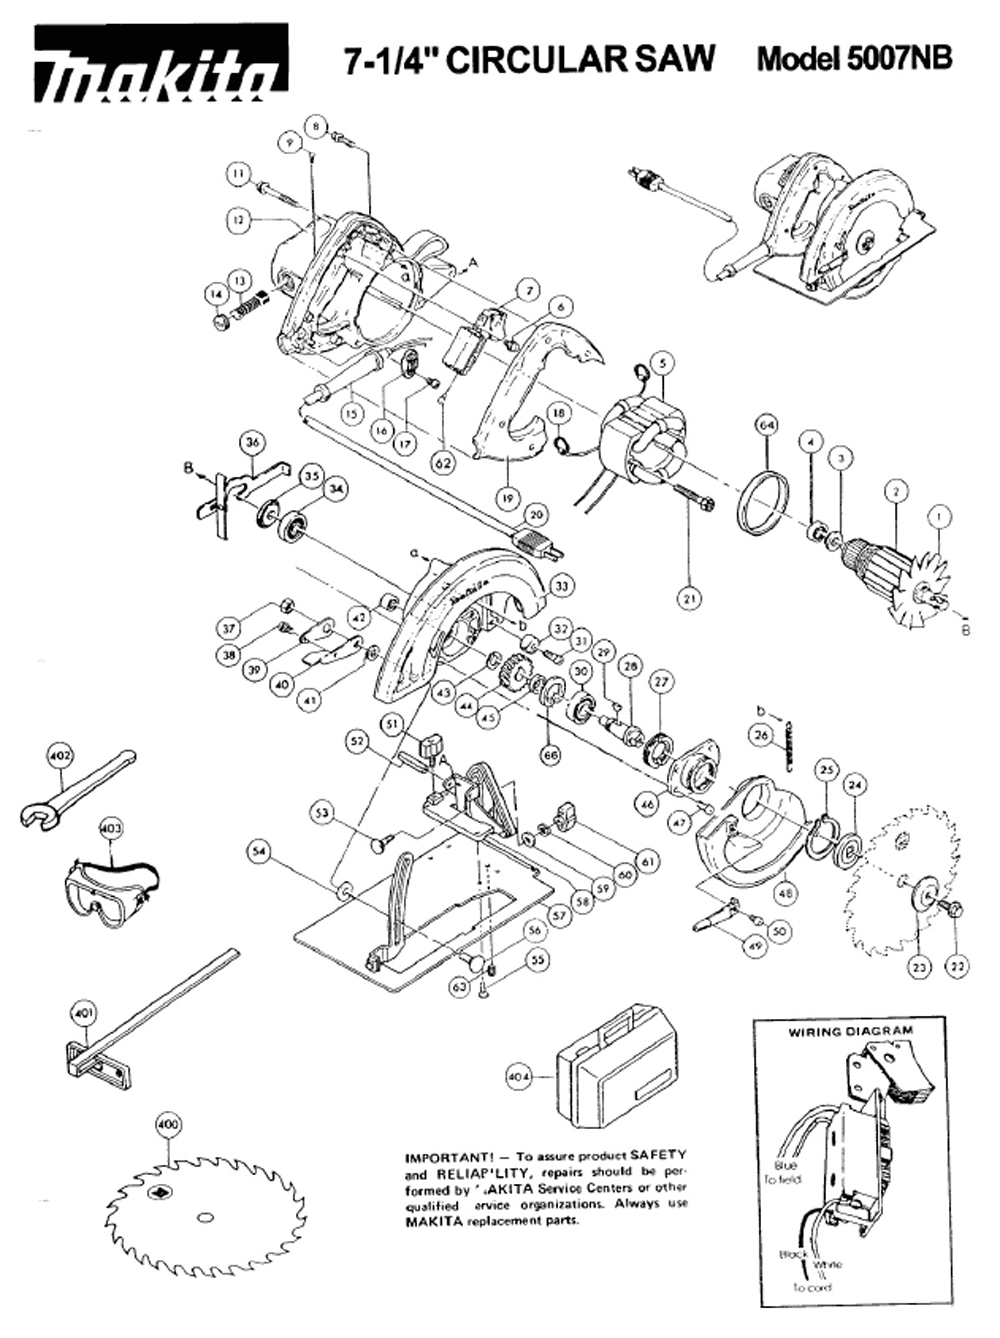 Makita 9227c wiring diagram citroen ax wiring diagram at ww justdeskto allpapers viewtopic 1b2673689e677cd5cb5b3ba1d5fe6706